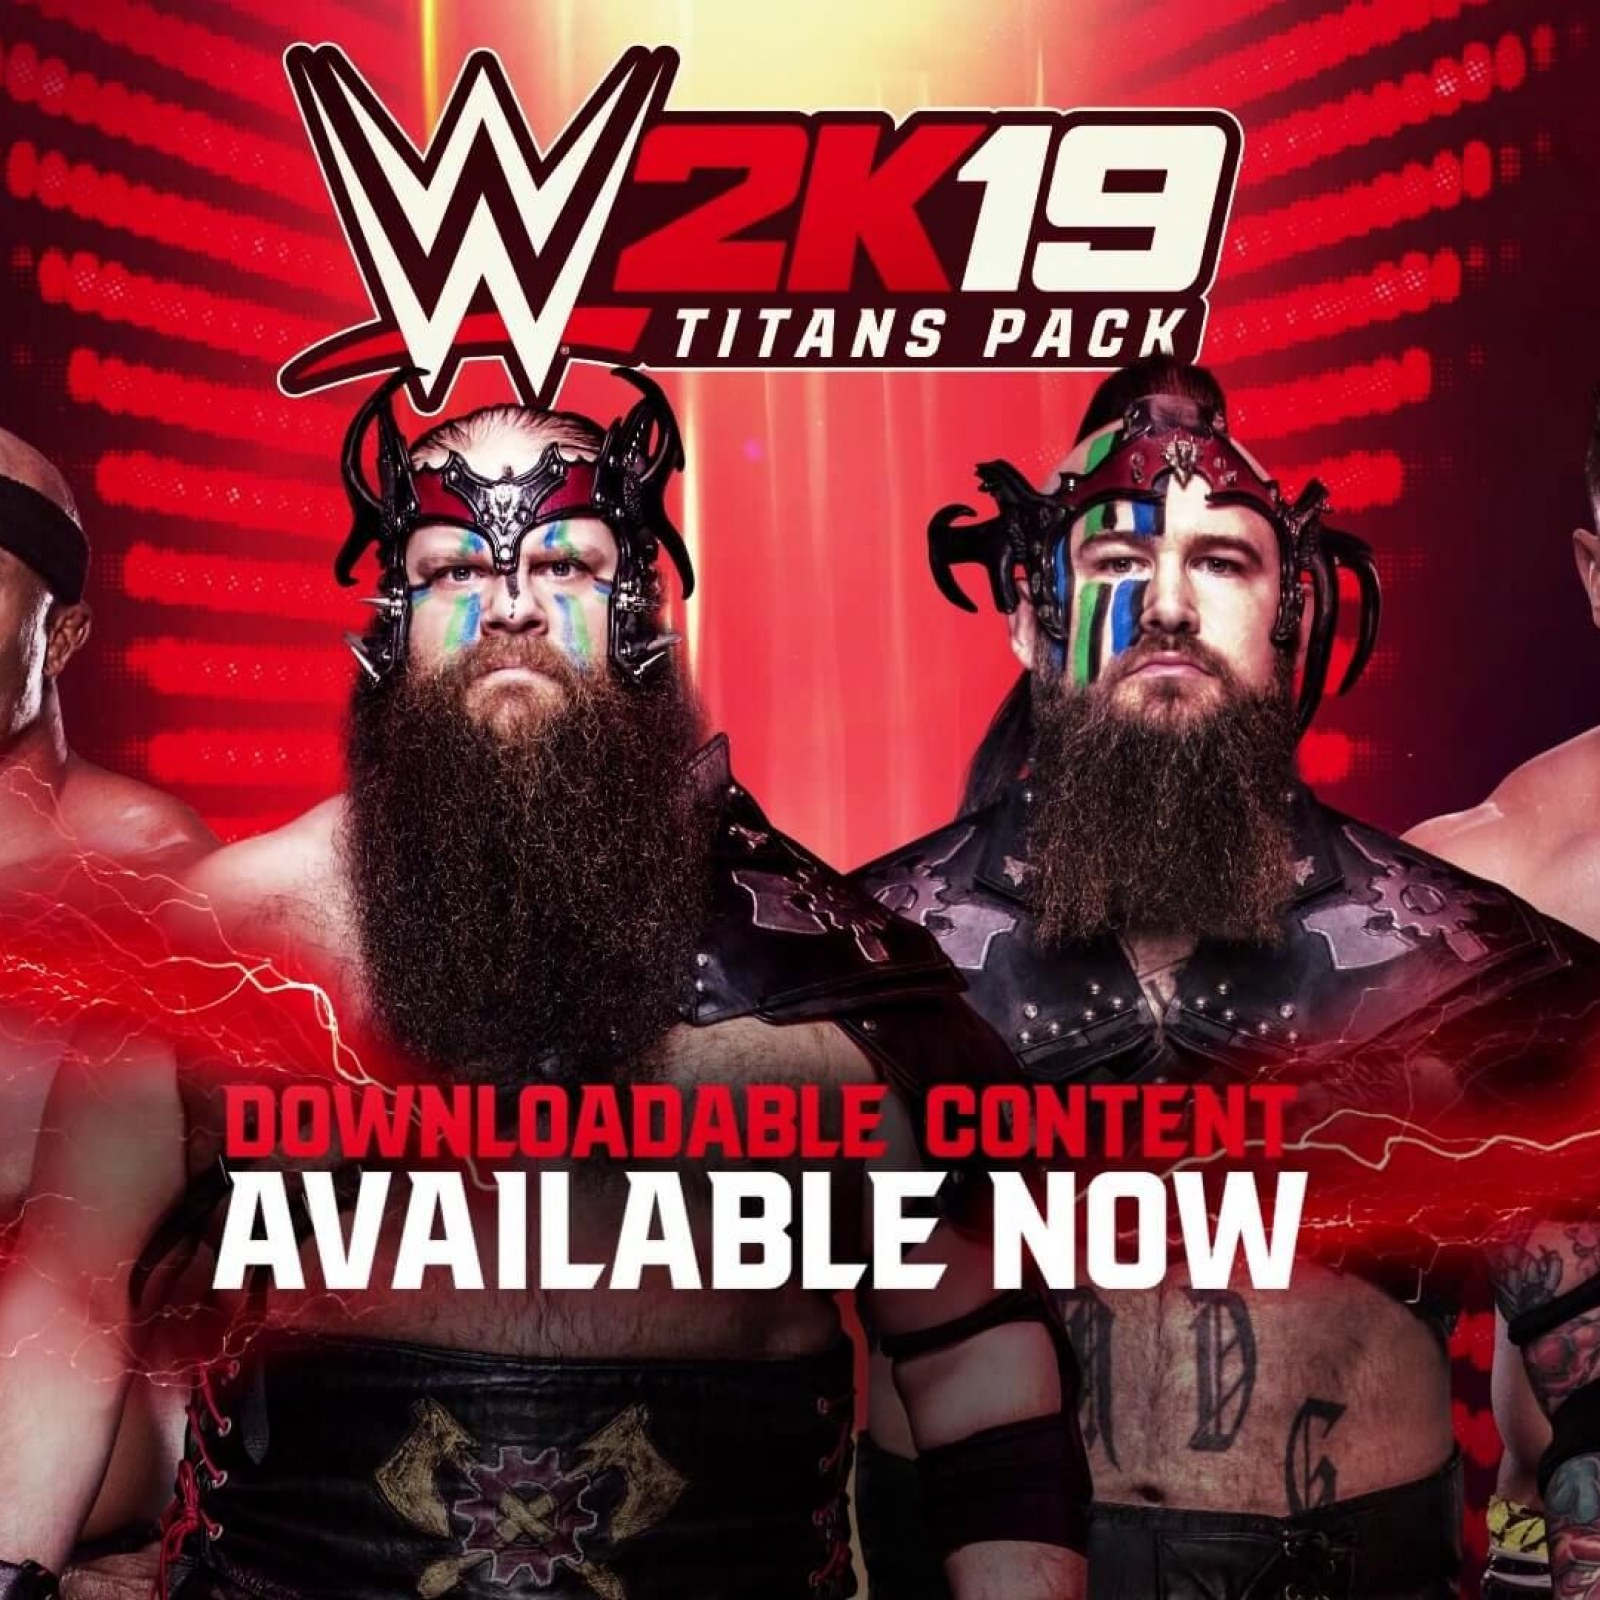 WWE 2K19' DLC: Titans Pack Now Available, Includes Bobby